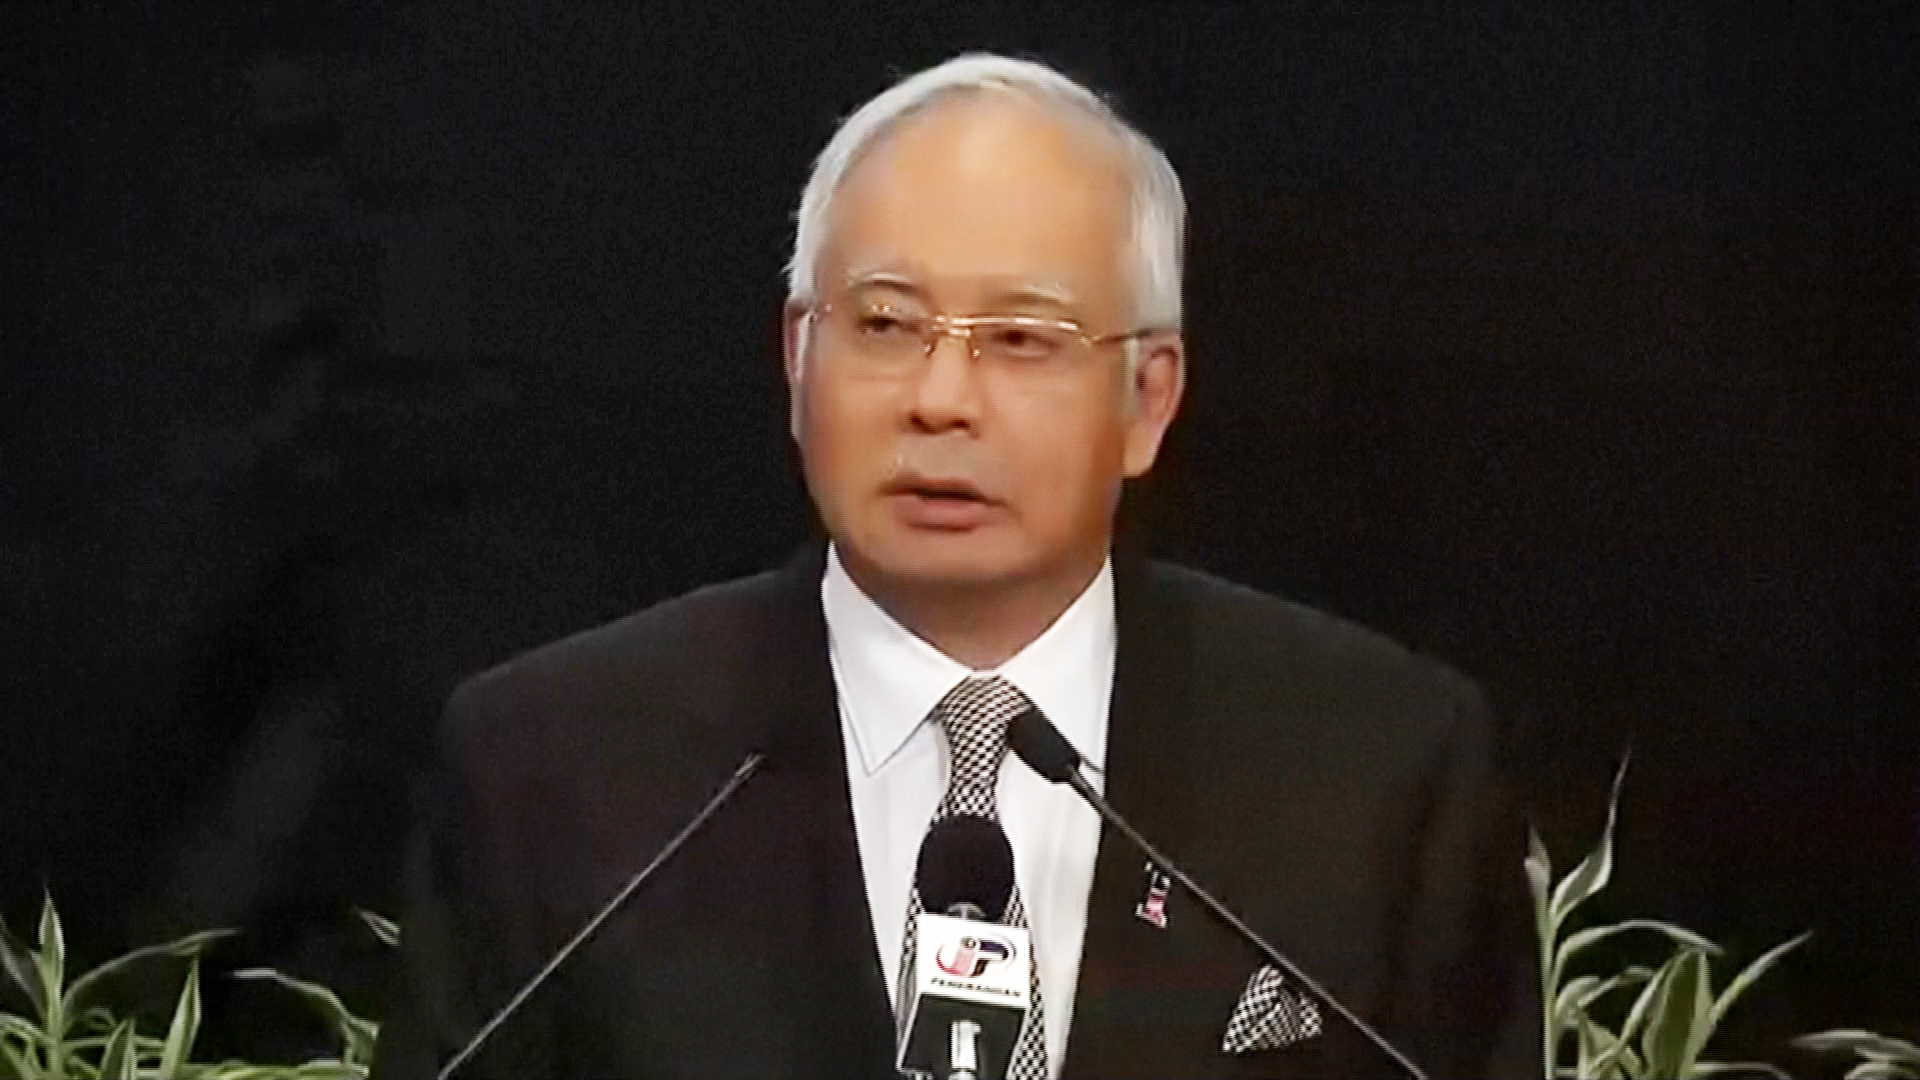 Missing MH370 'Ended' in Indian Ocean, Malaysia's PM Says